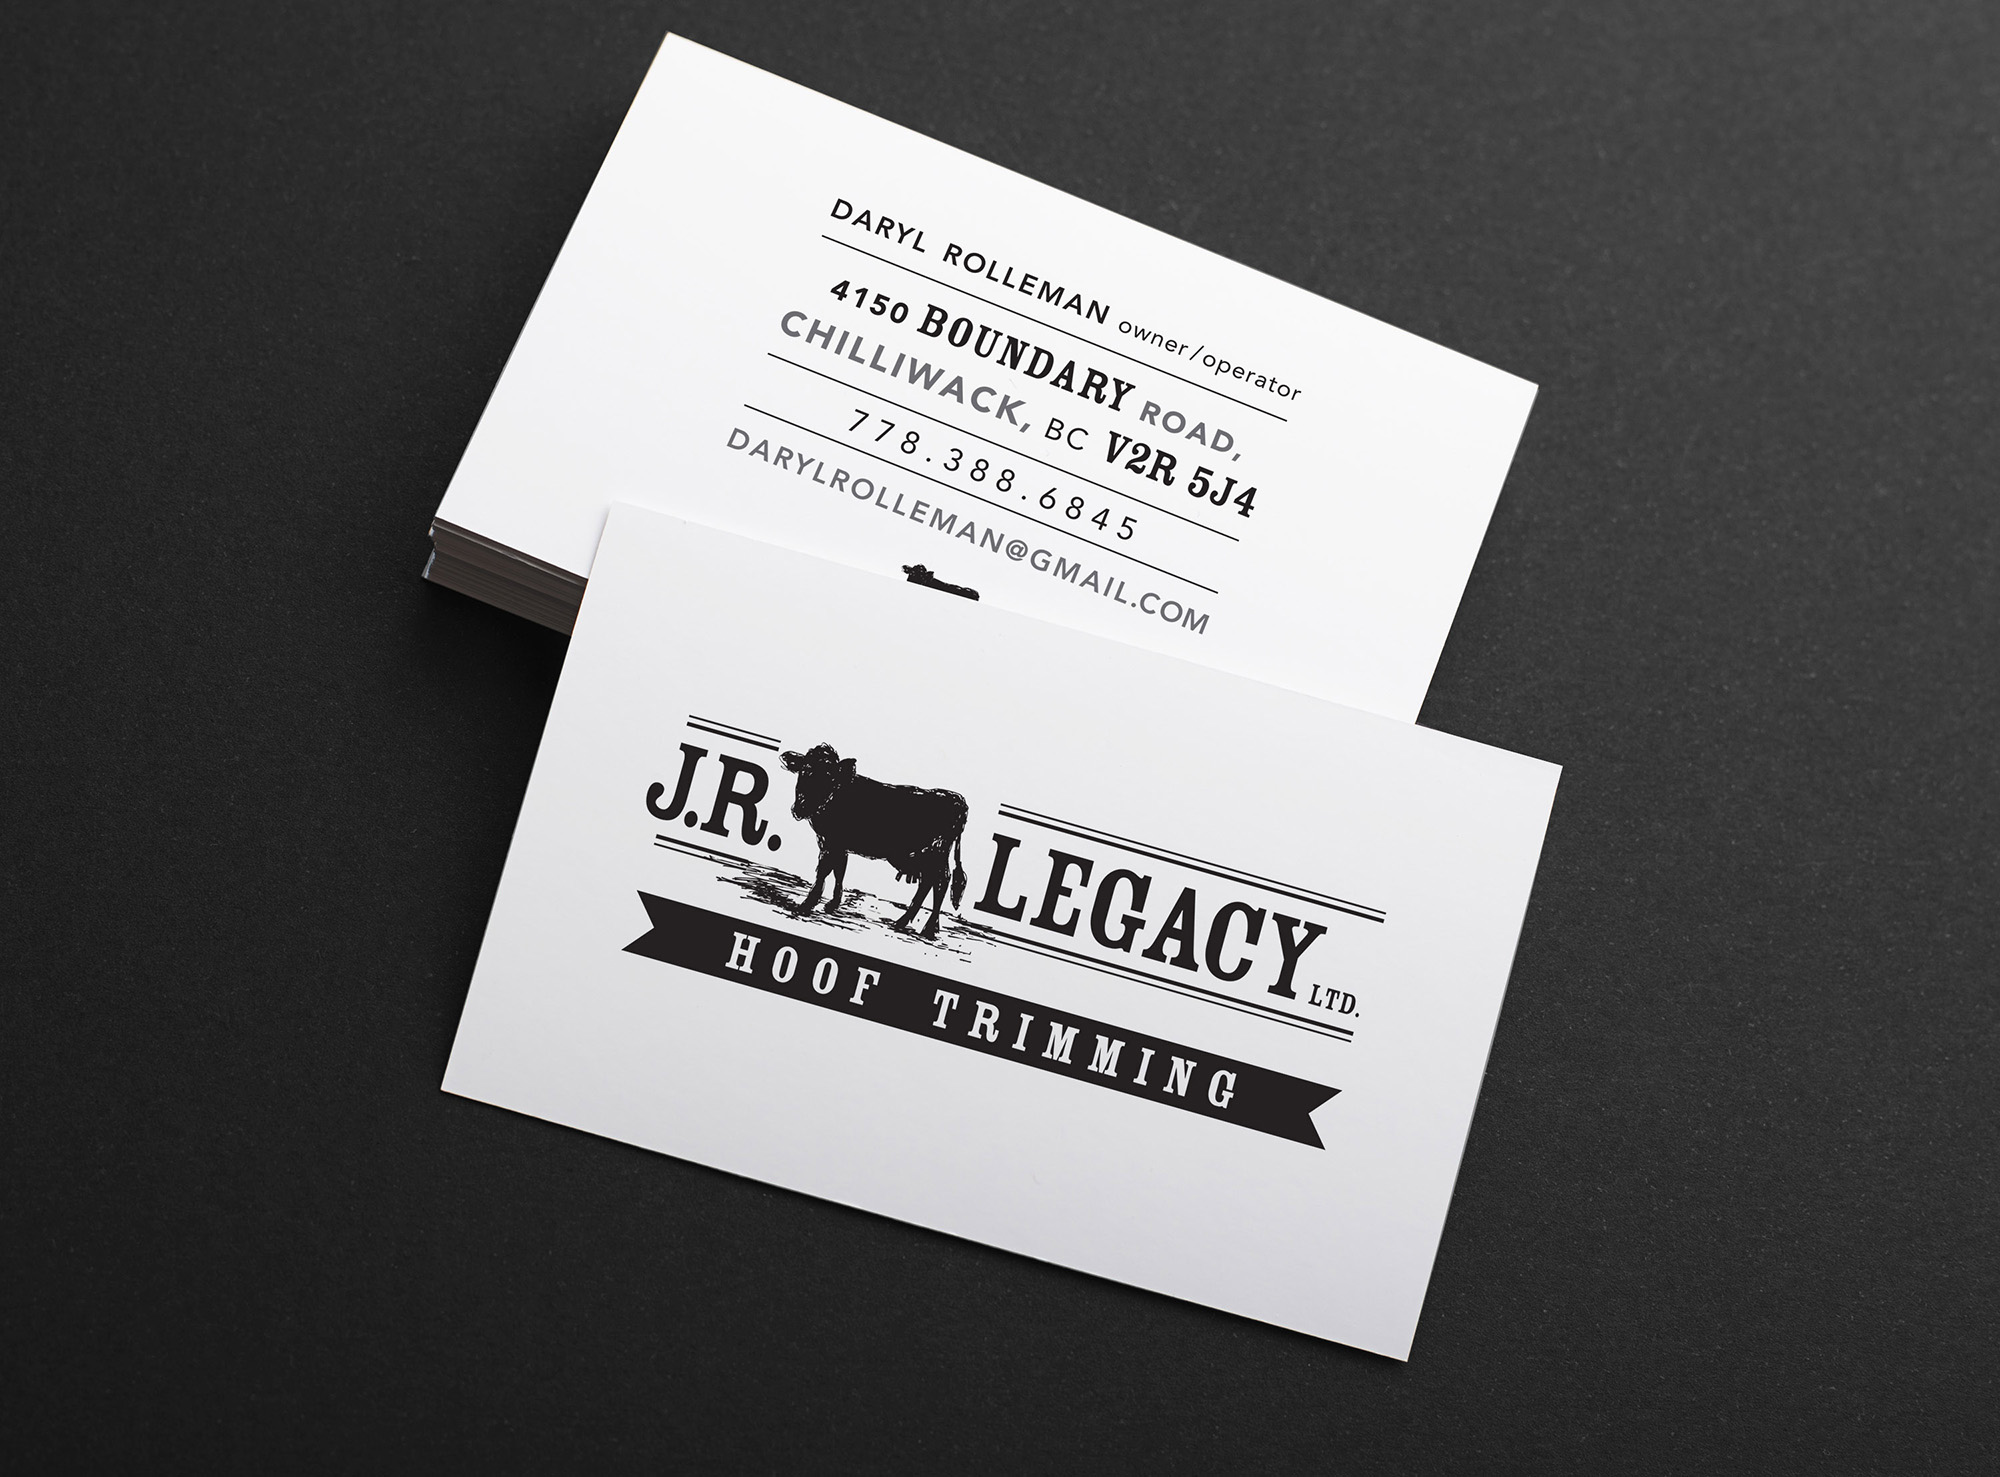 JR_Legacy_Hoof_Trimming_Vehicle_Business_Card.jpg